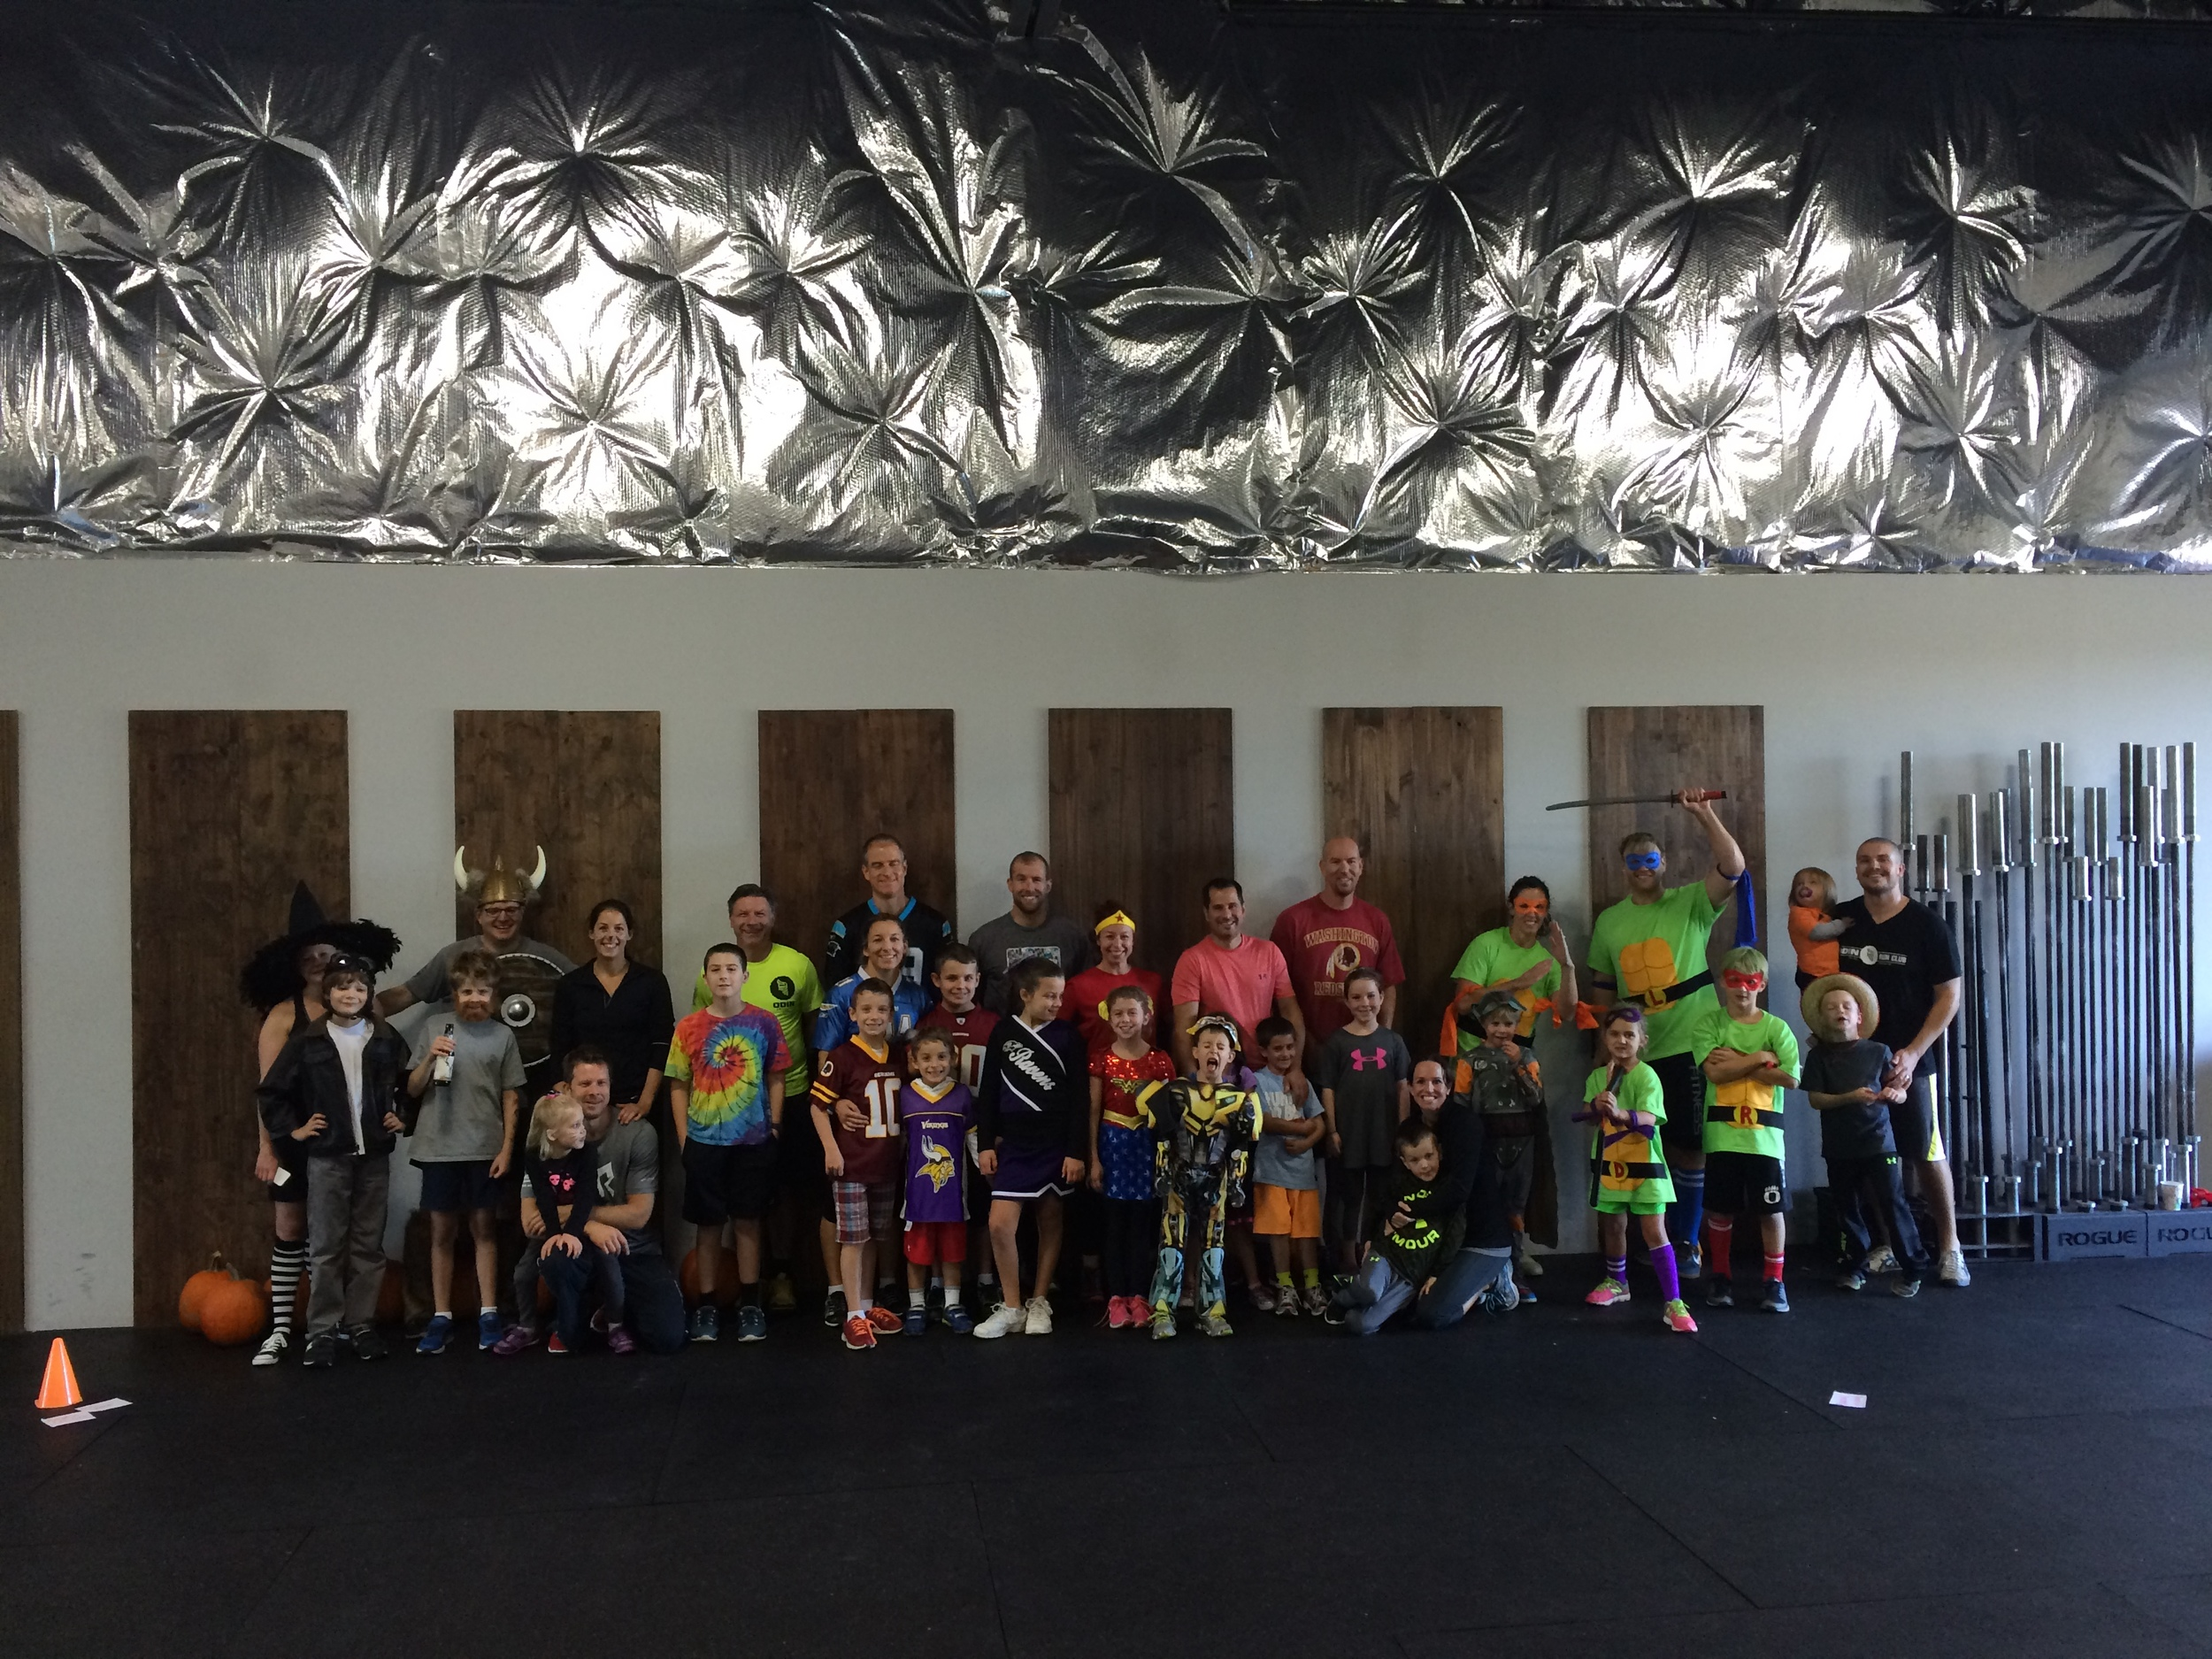 This month's Family WOD was Halloween themed! Great costumes everyone!